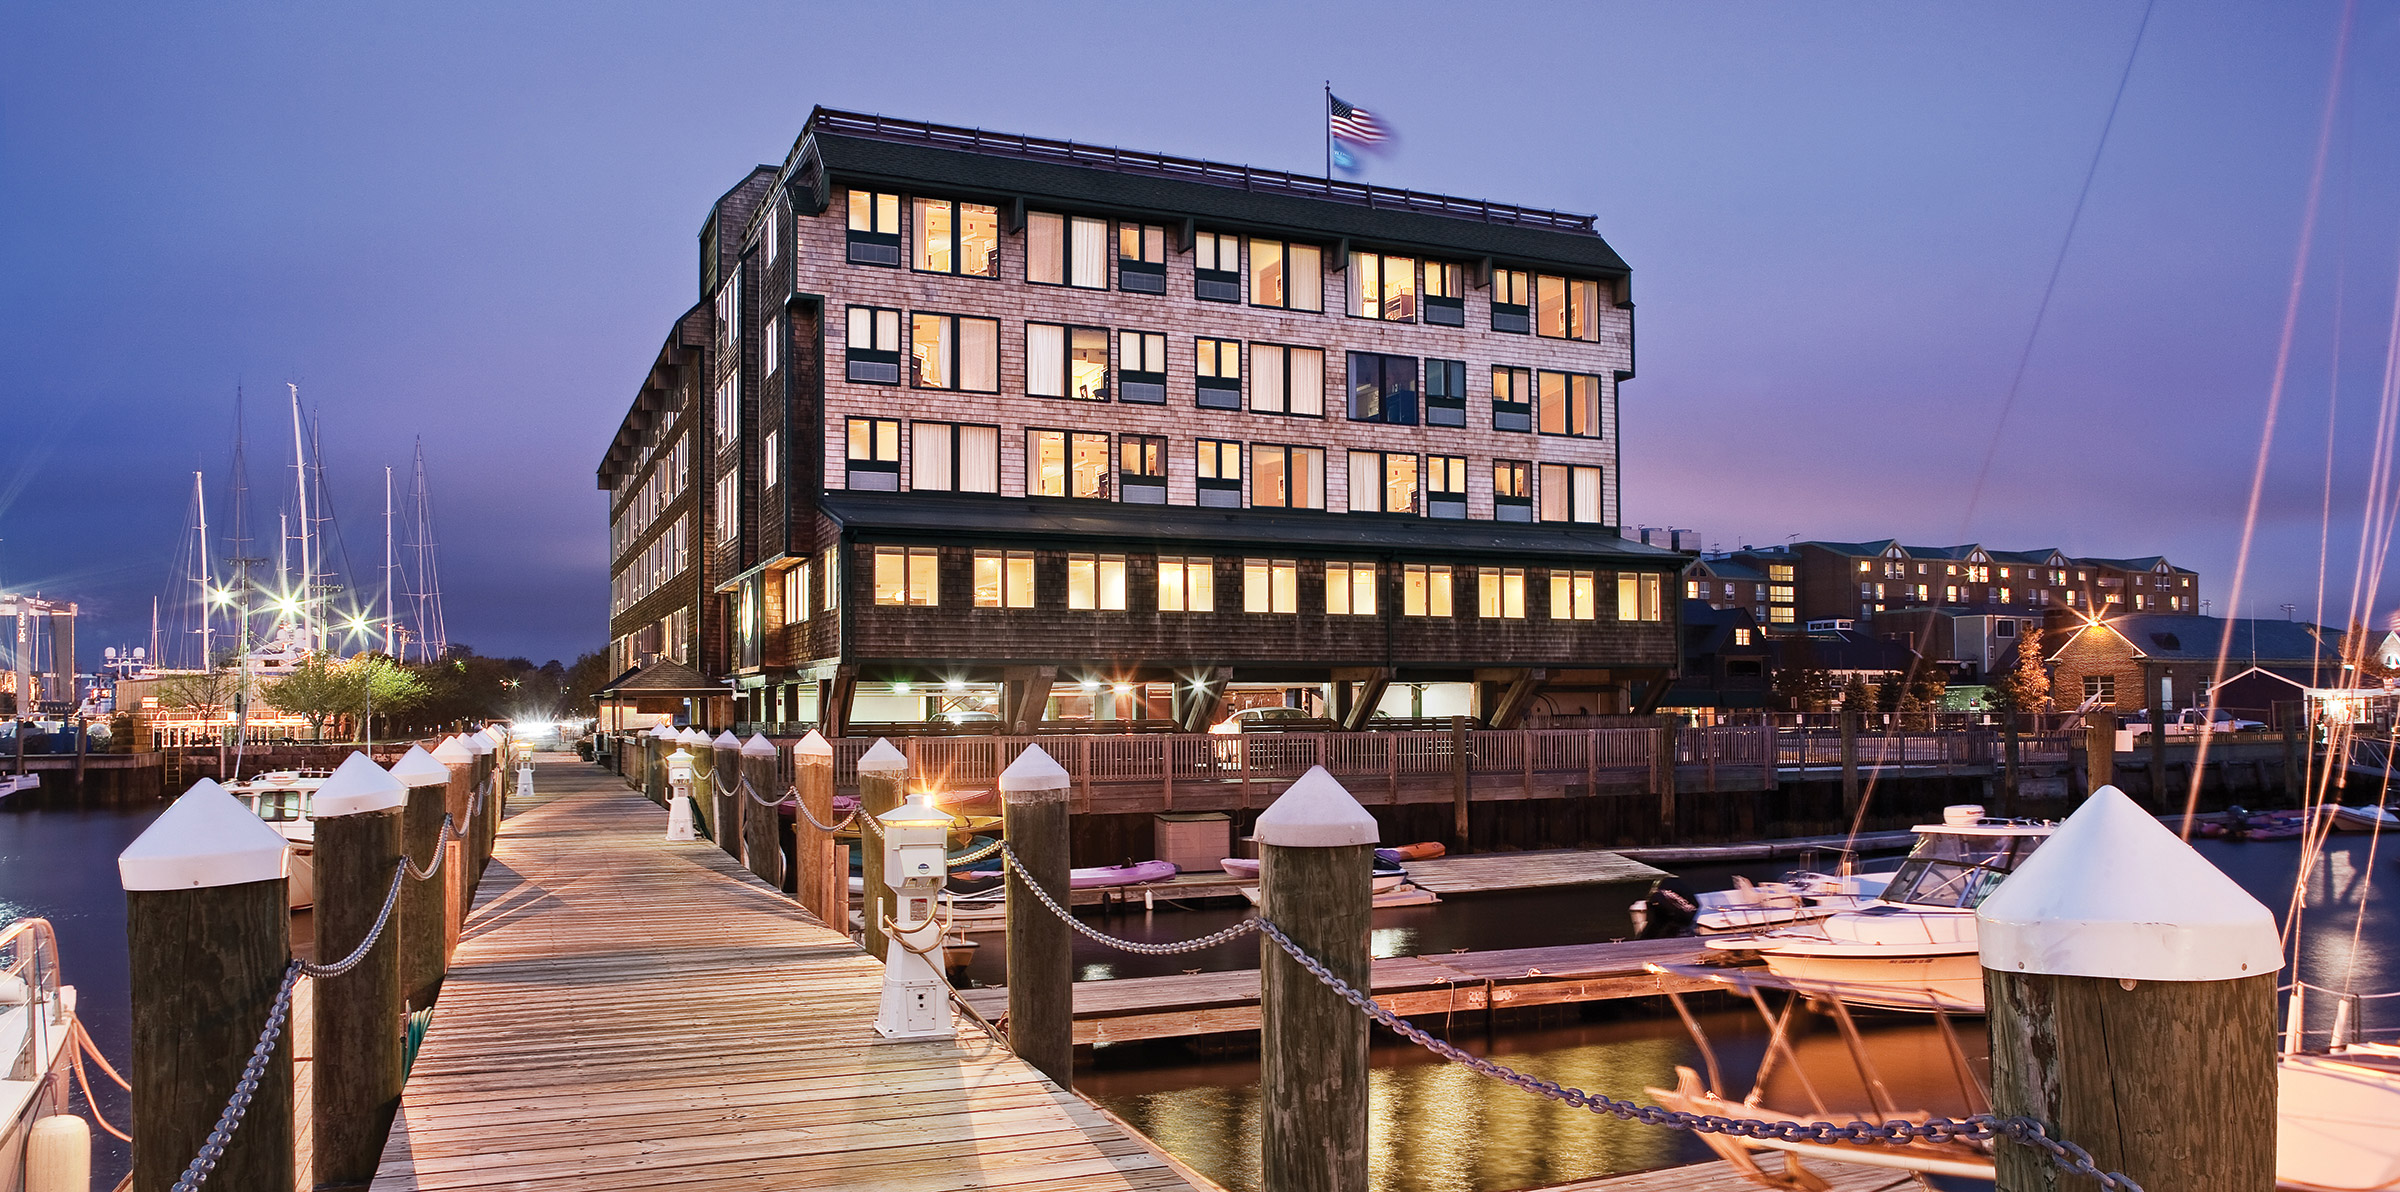 Wyndham Inn on Long Wharf image